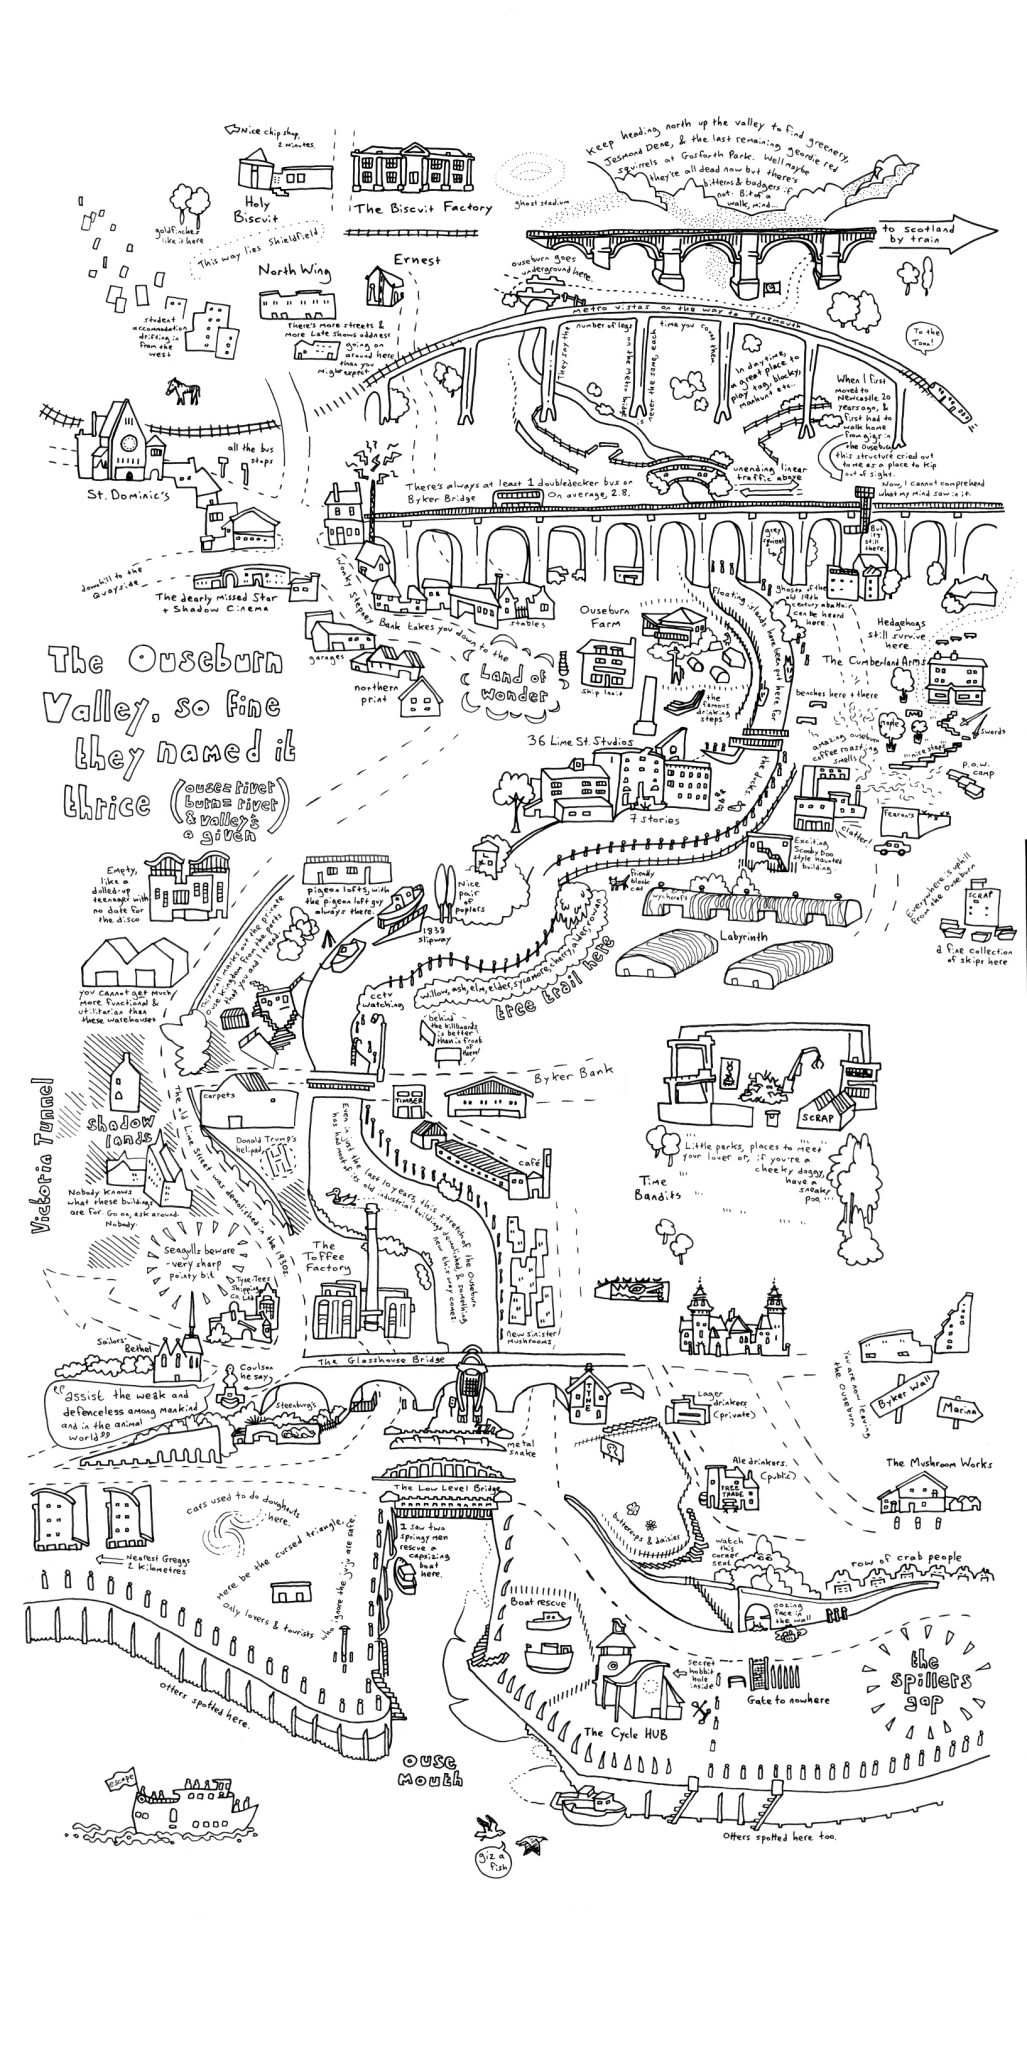 An illustrated map of the Ouseburn Valley for the Late Shows by Mike Duckett.